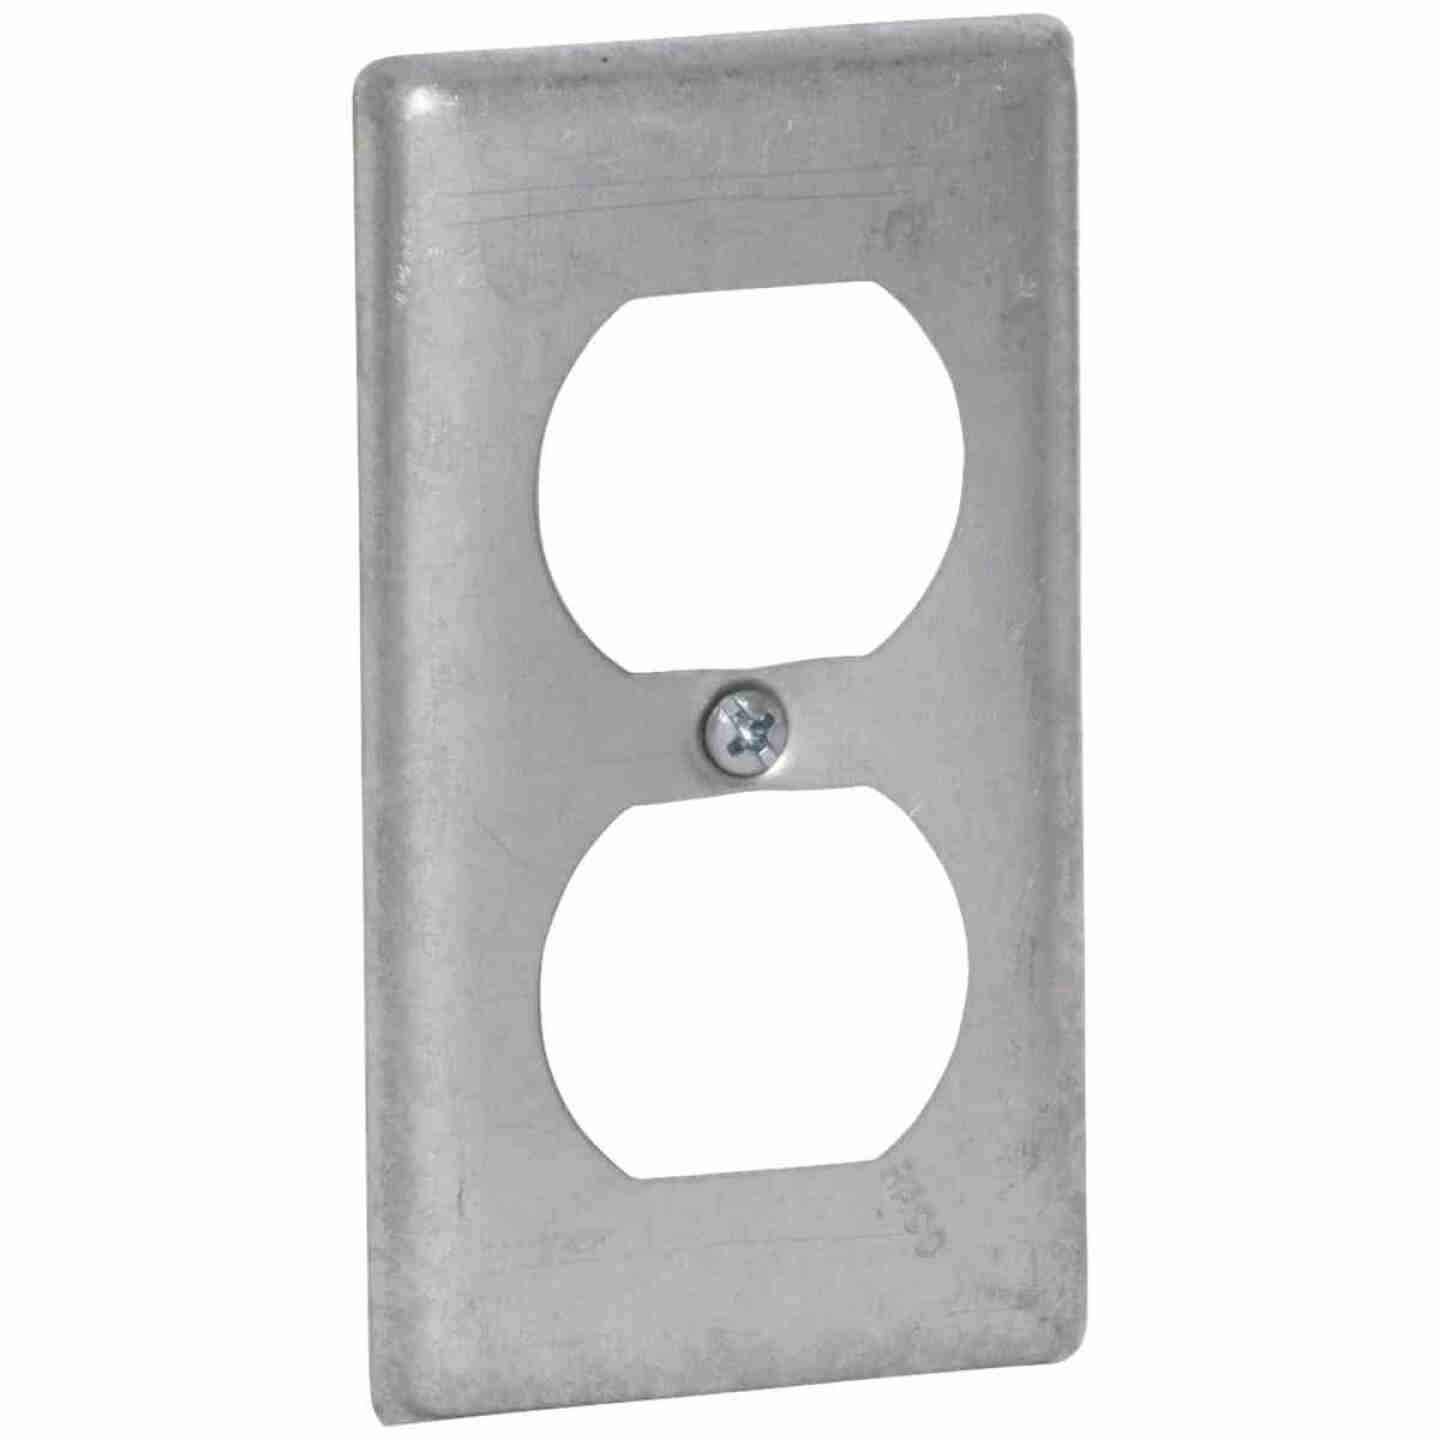 Raco Duplex Receptacle 4 In. x 2-1/8 In. Handy Box Cover Image 1